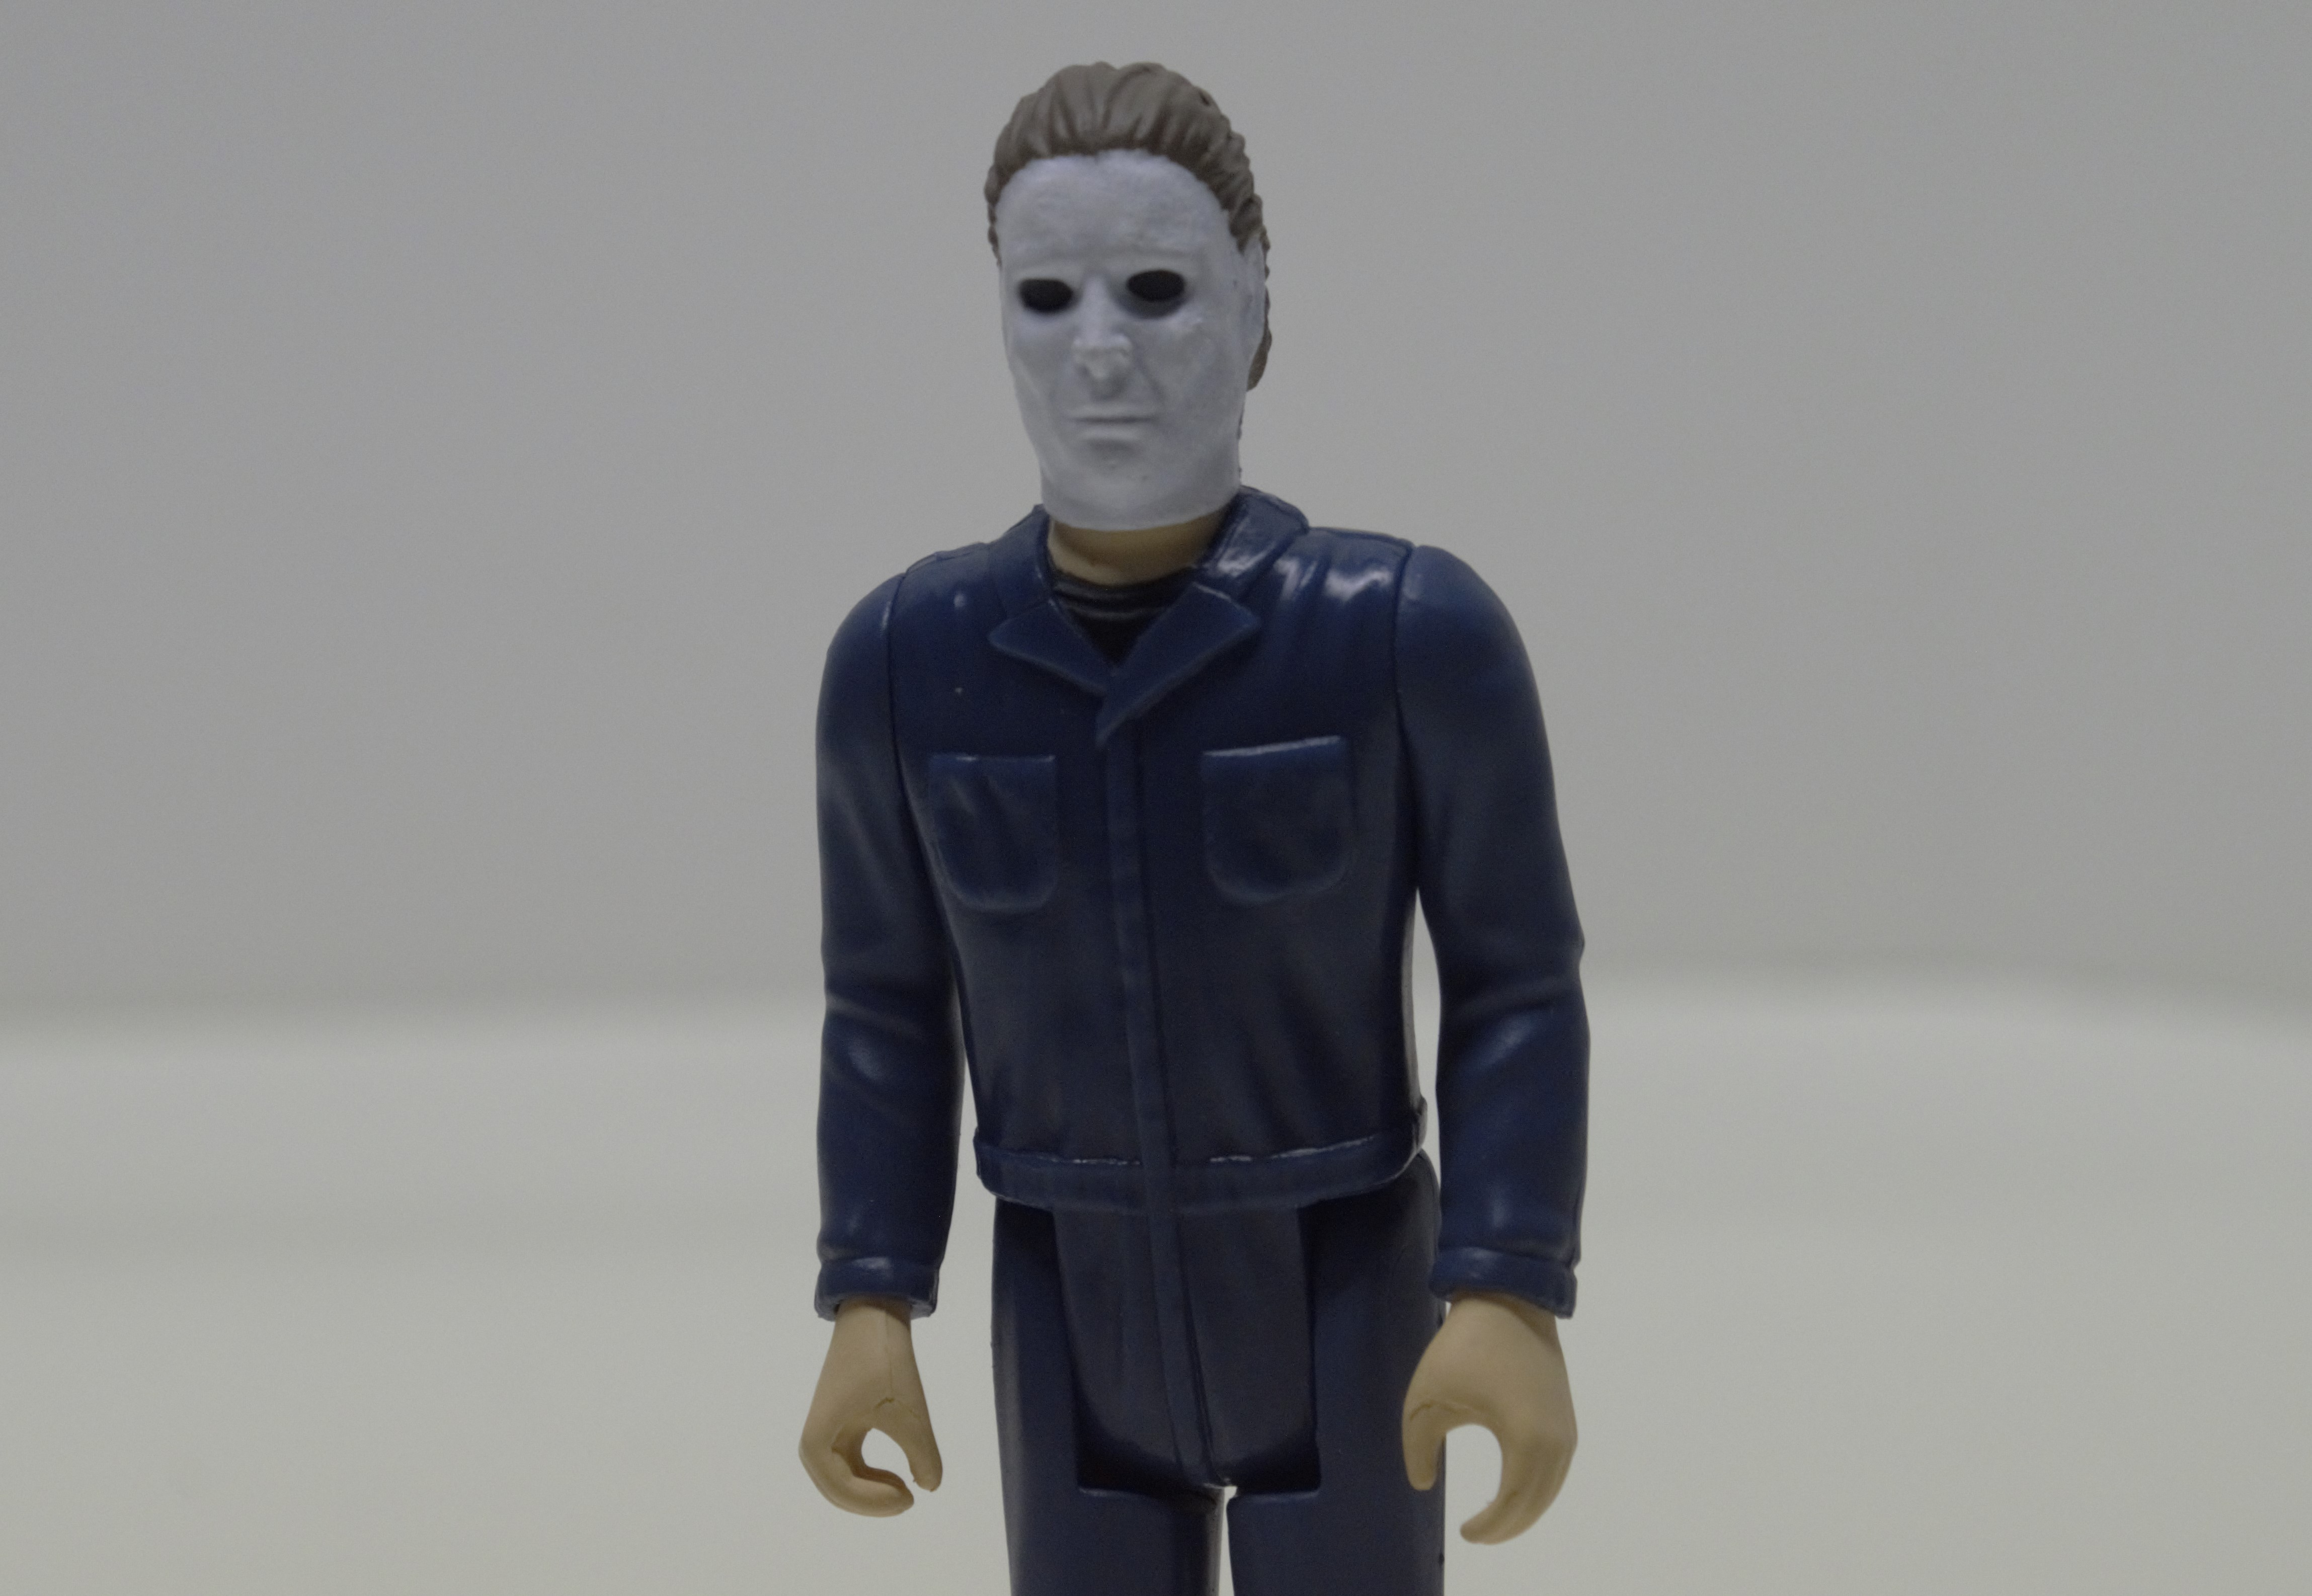 reaction-michael-myers-5